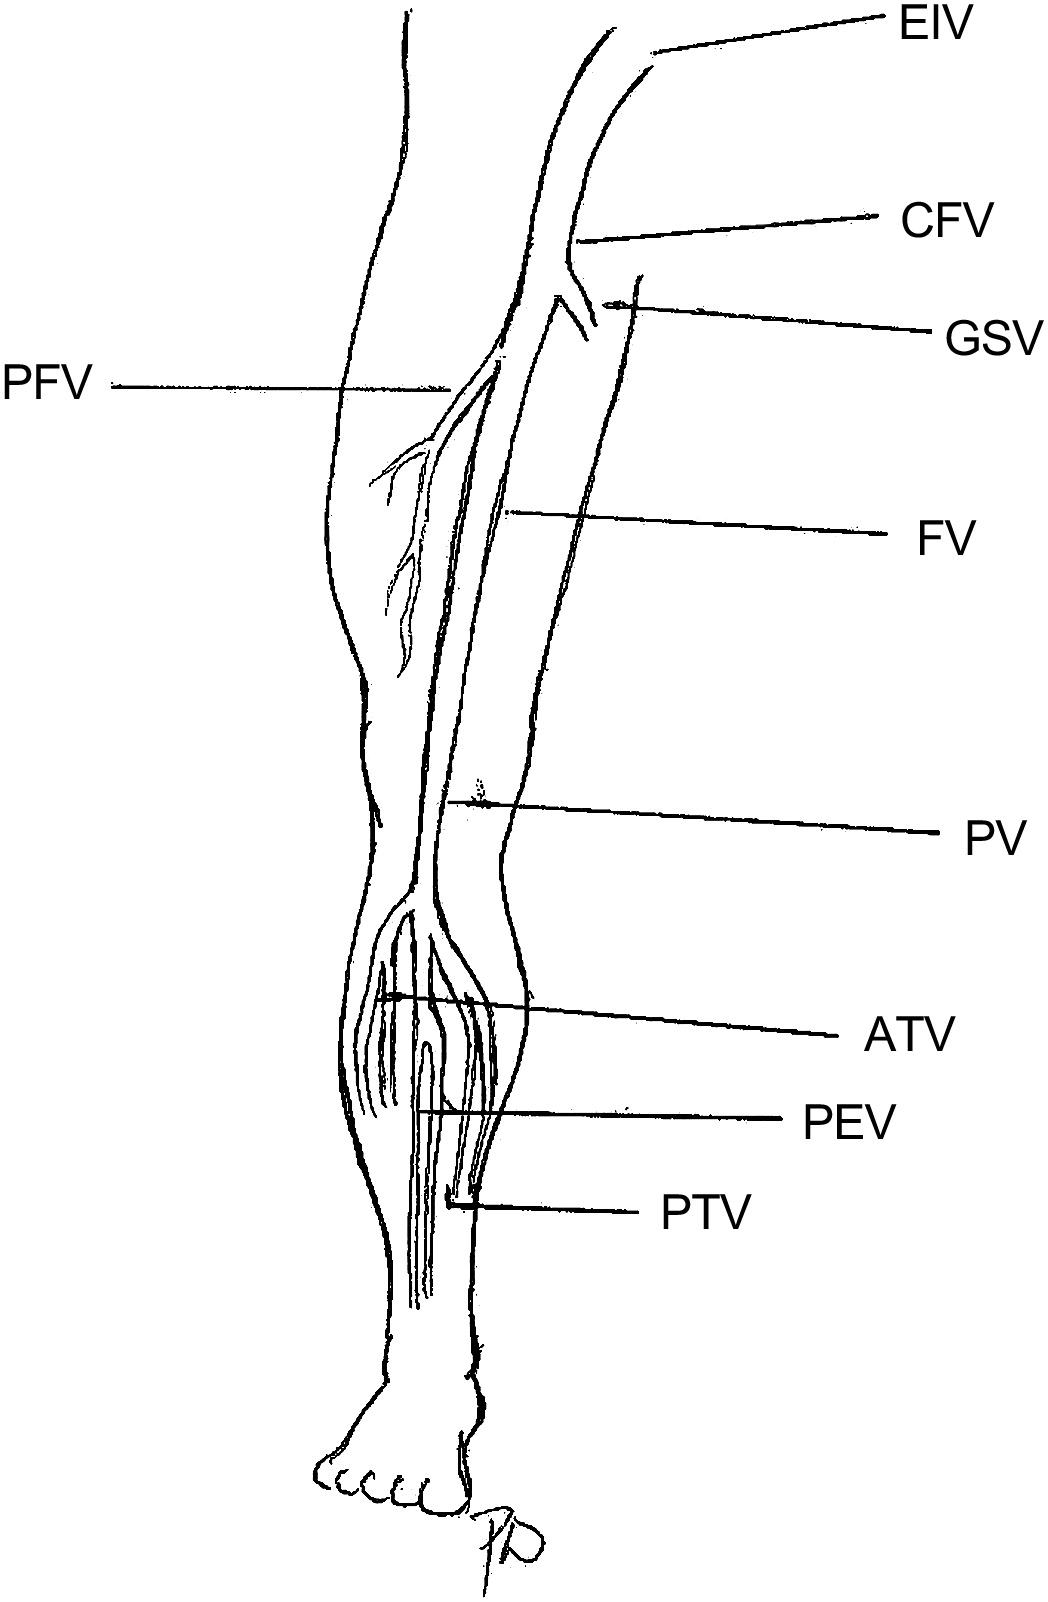 Ultrasound Evaluation Of The Lower Extremity Veins